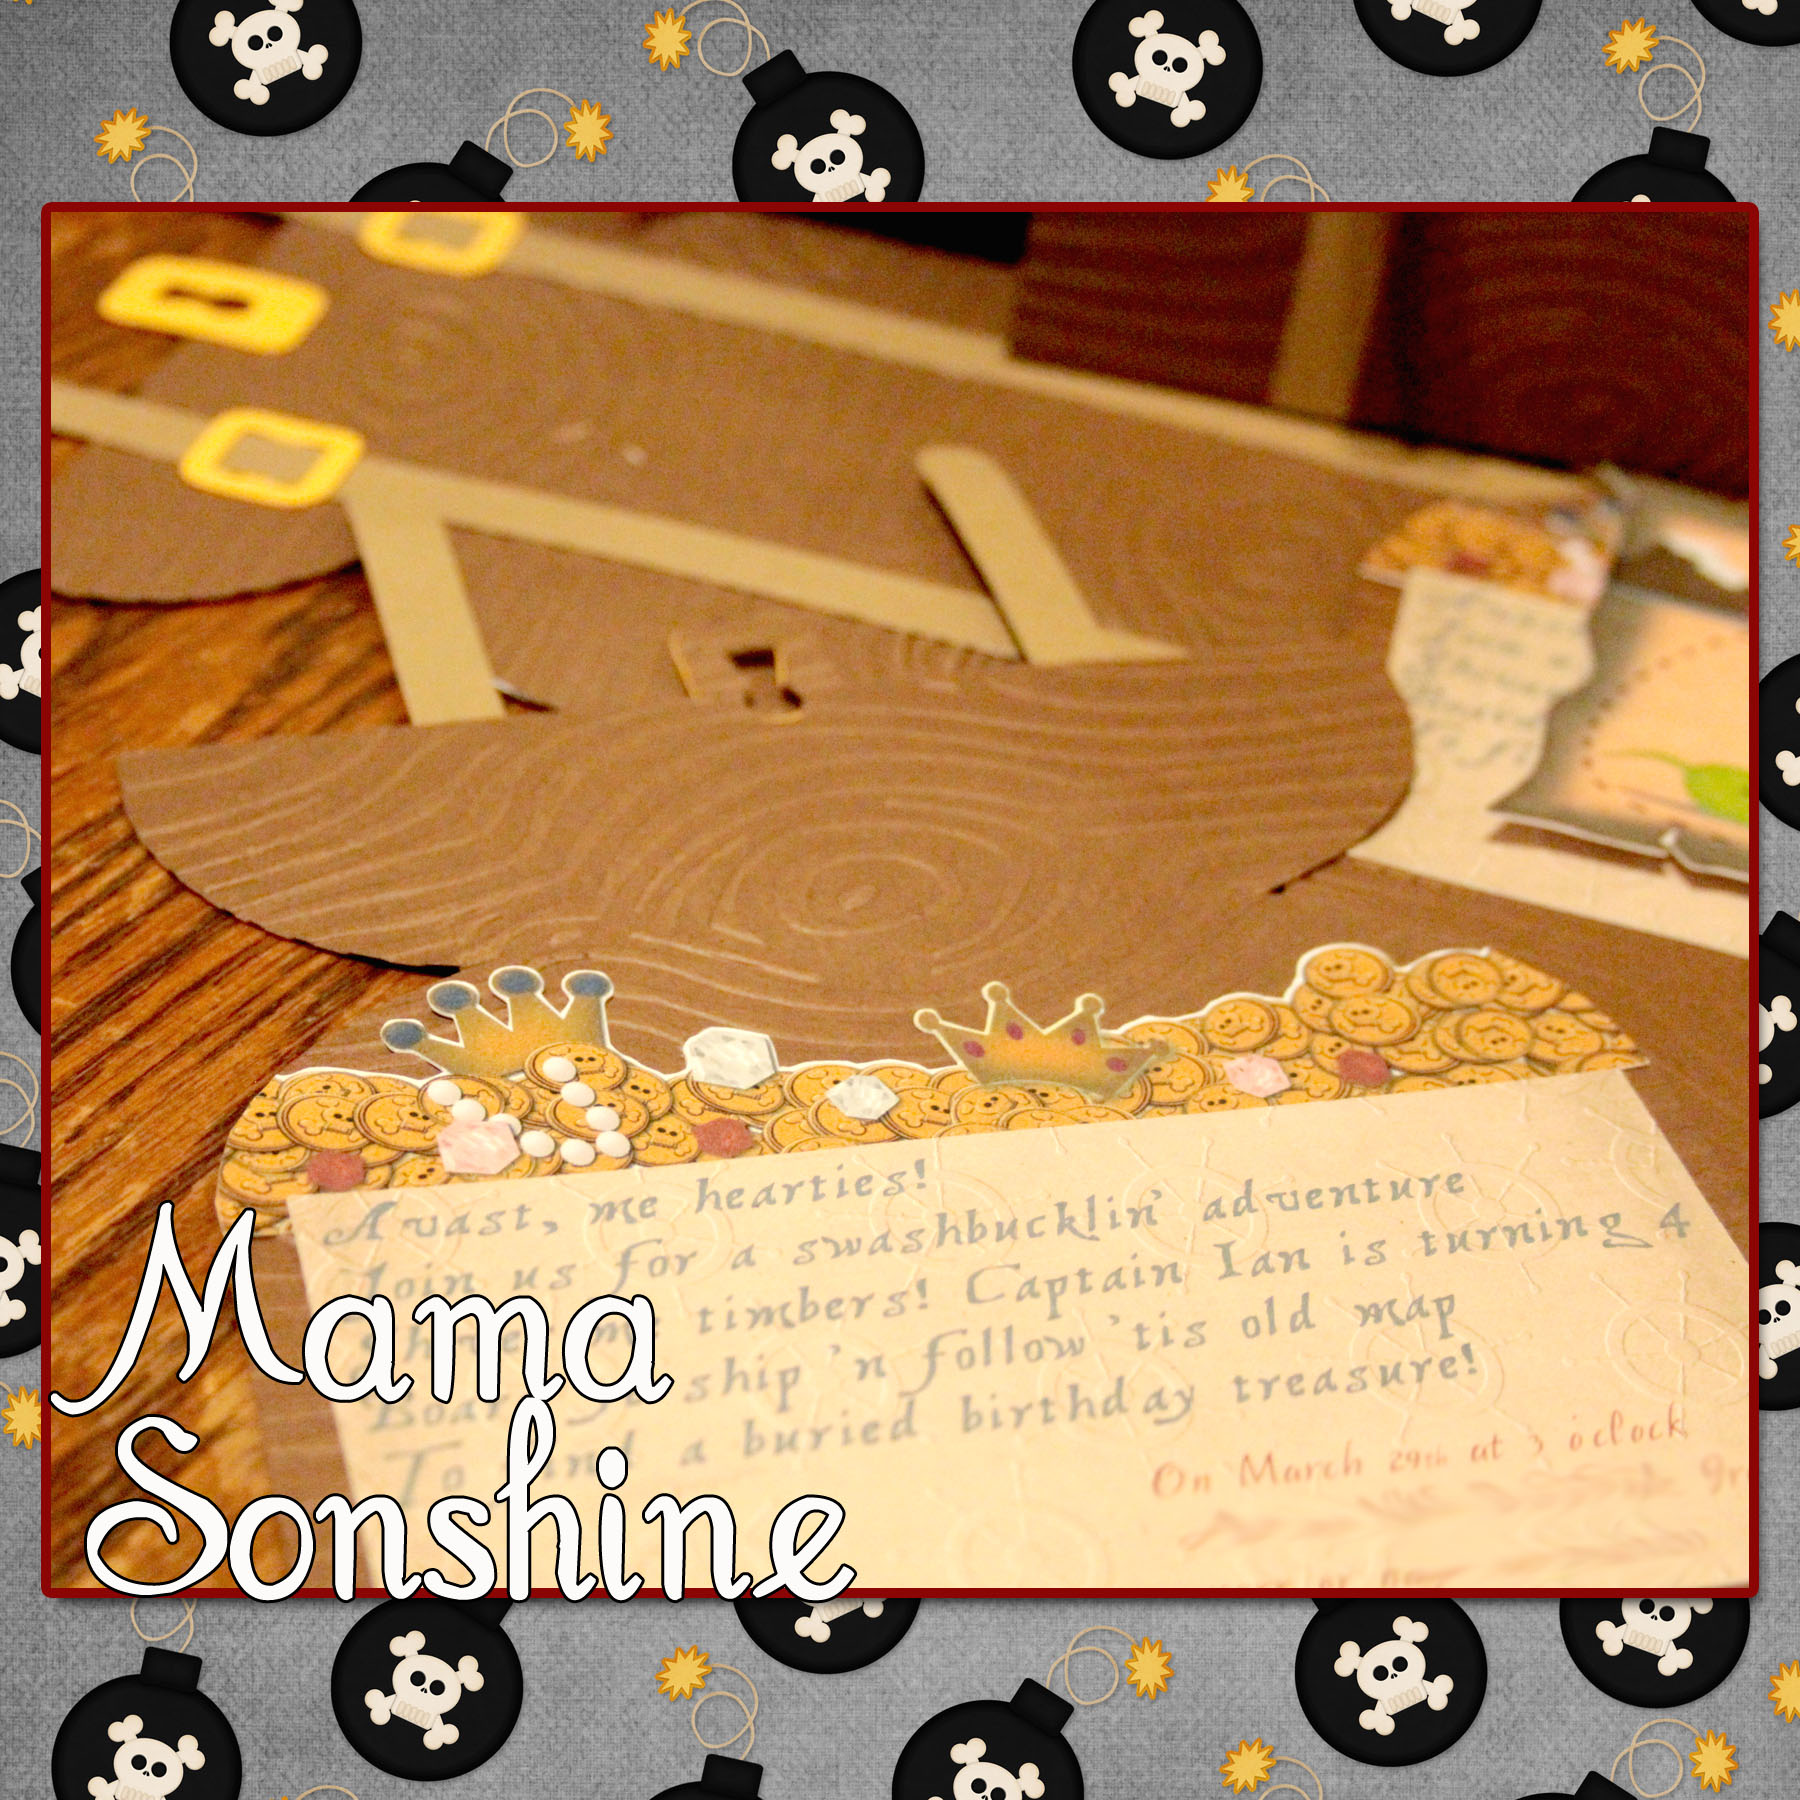 Hand Made Decorations for a Pirate Party | Mama Sonshine